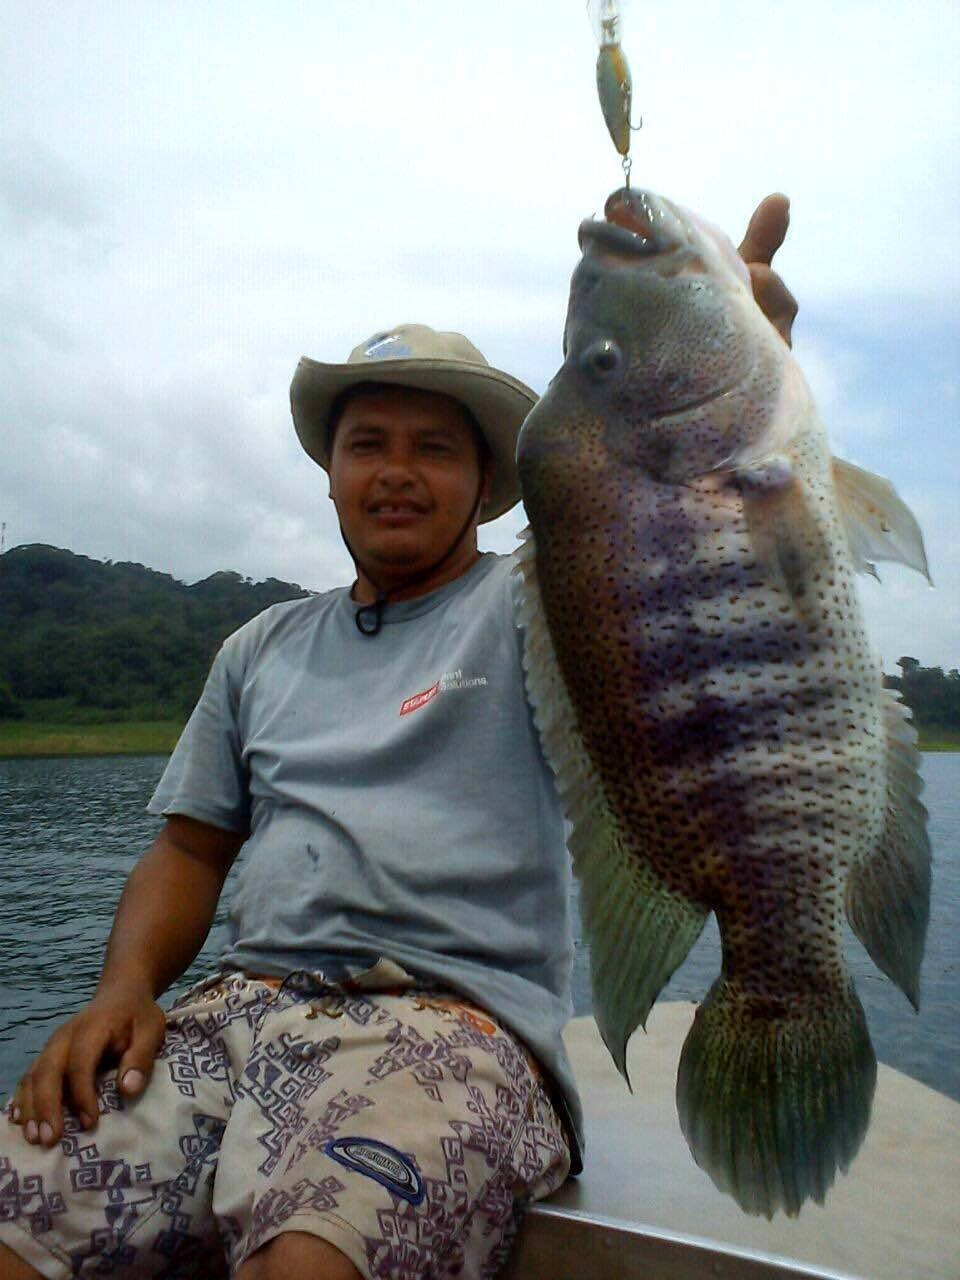 Henry with another large Lake Coter Guapote